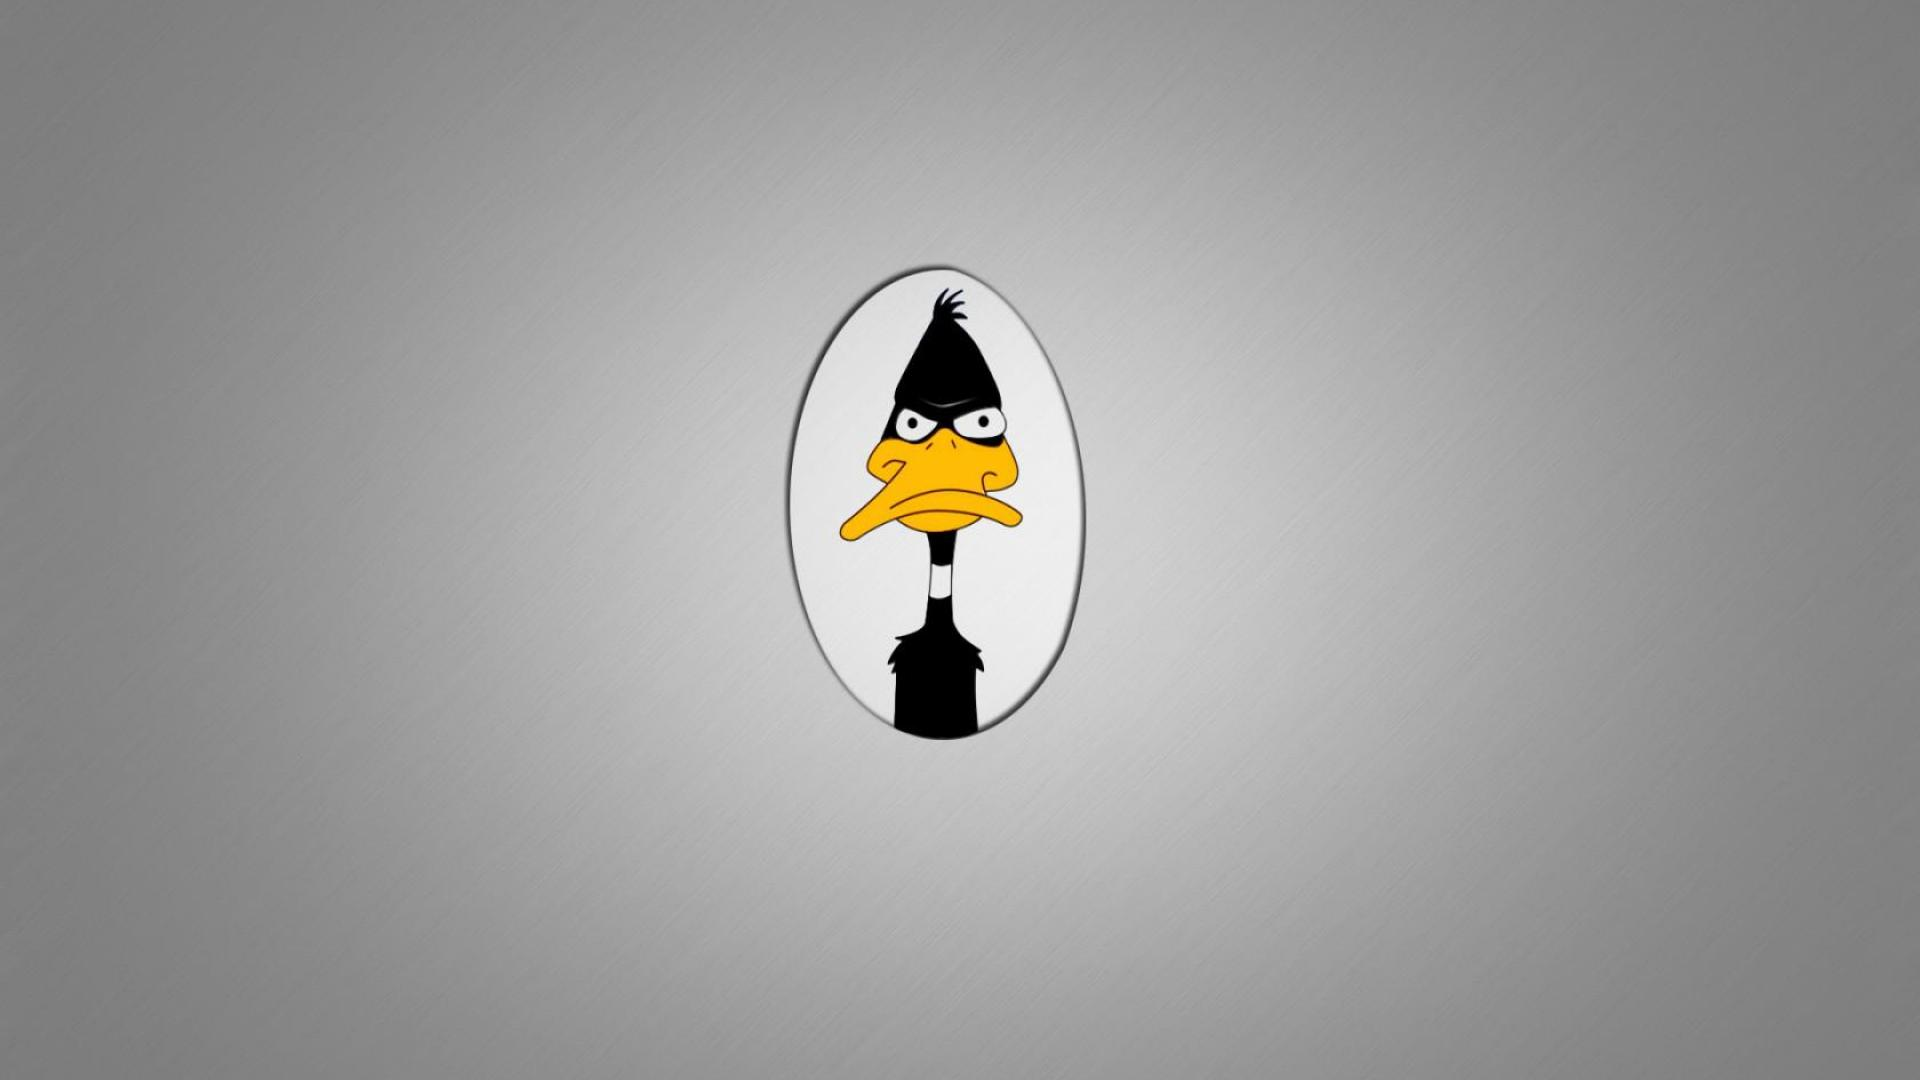 Cars Wallpapers 2014 Hd Download Daffy Duck Wallpaper Wallpaper High Definition High